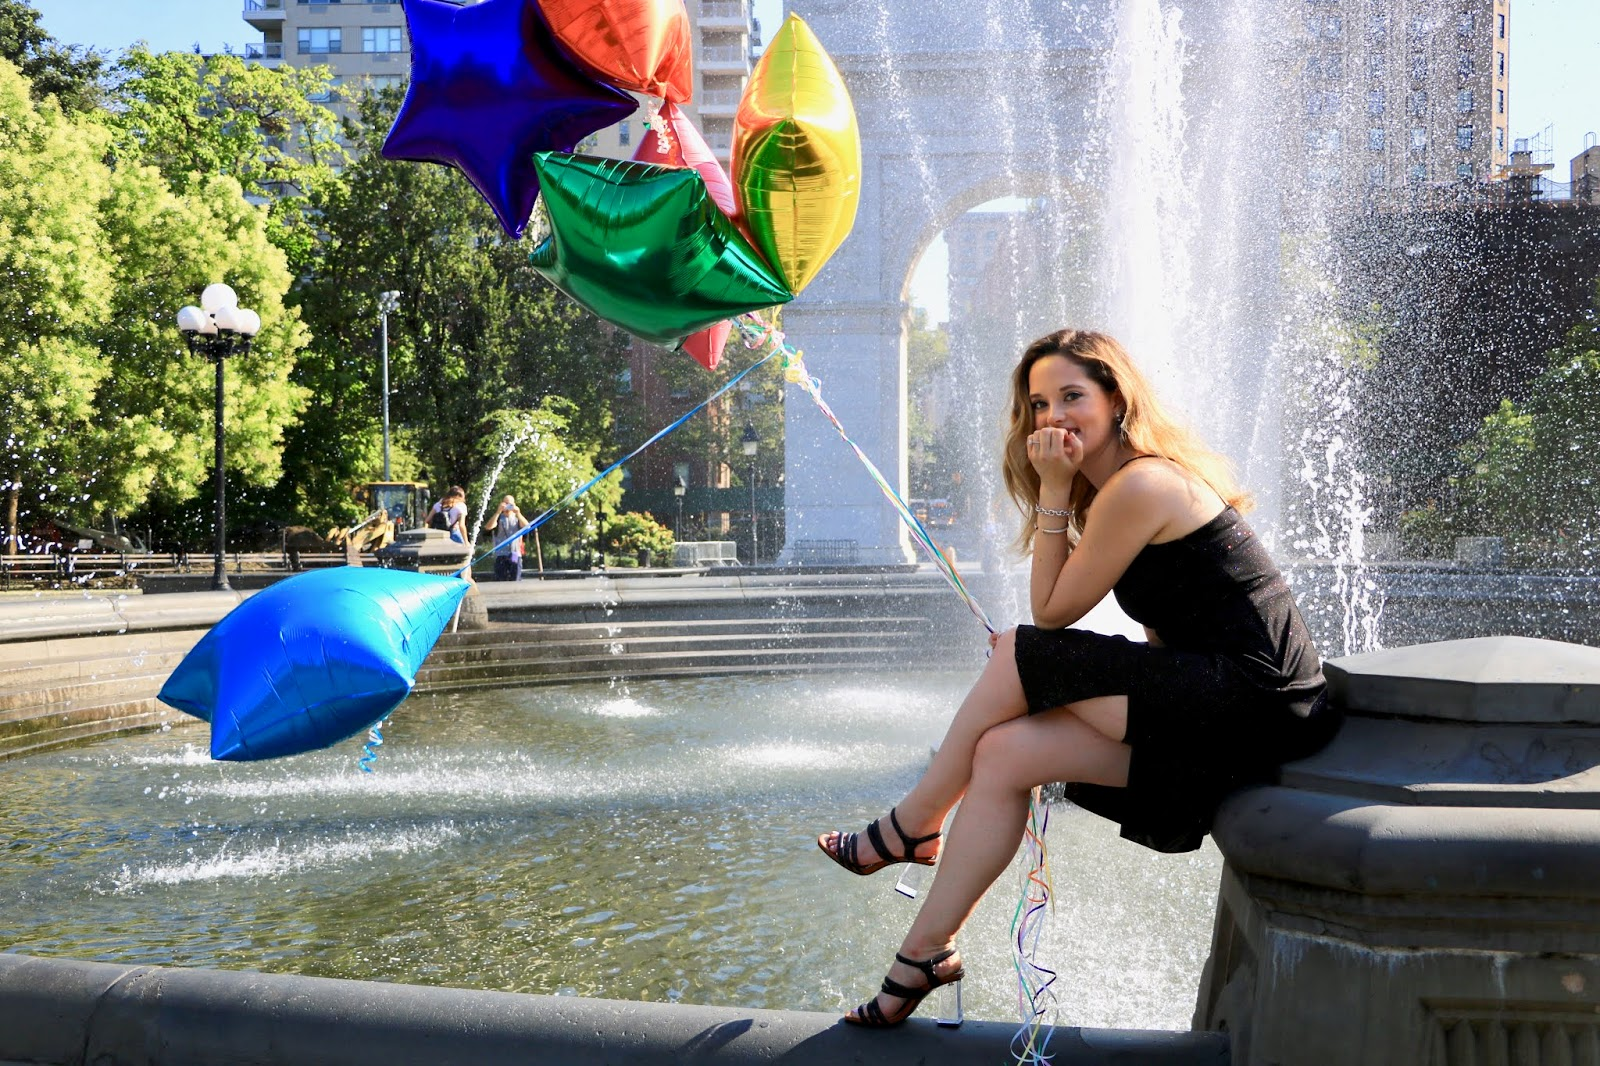 Nyc fashion blogger Kathleen Harper doing a balloon photoshoot.